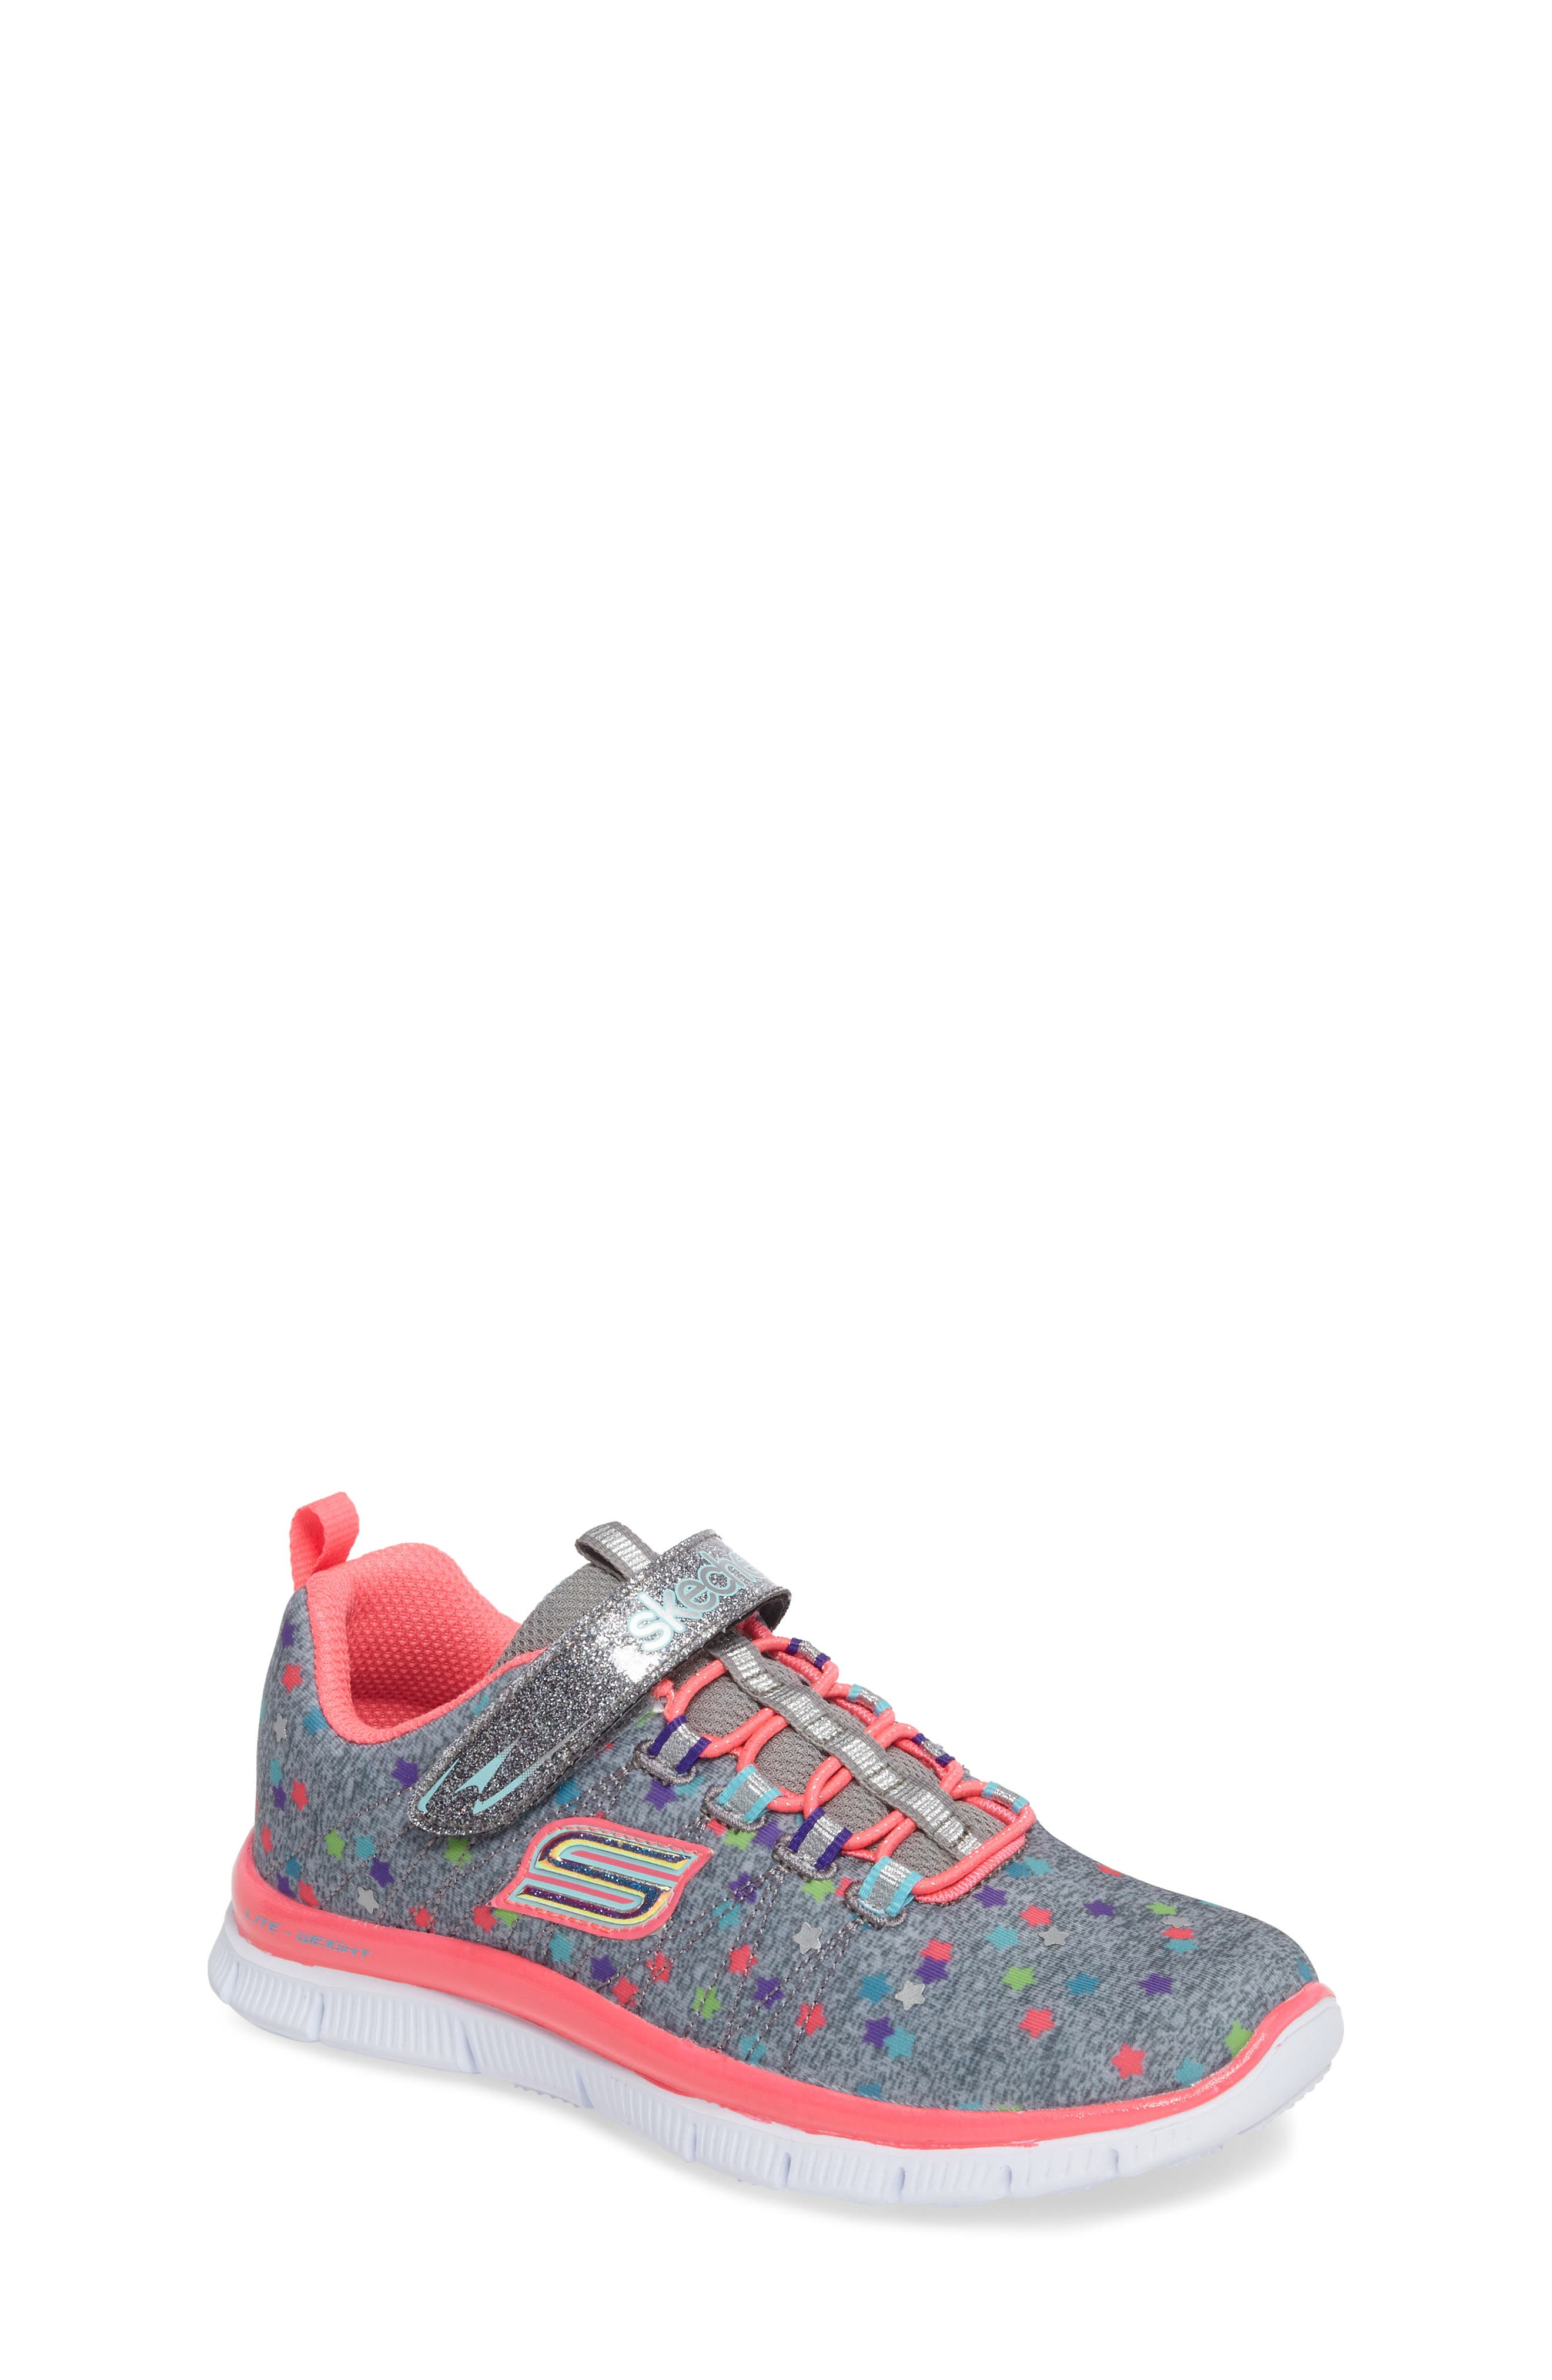 Skech Appeal Star Spirit Sneaker,                         Main,                         color, Grey/ Multi